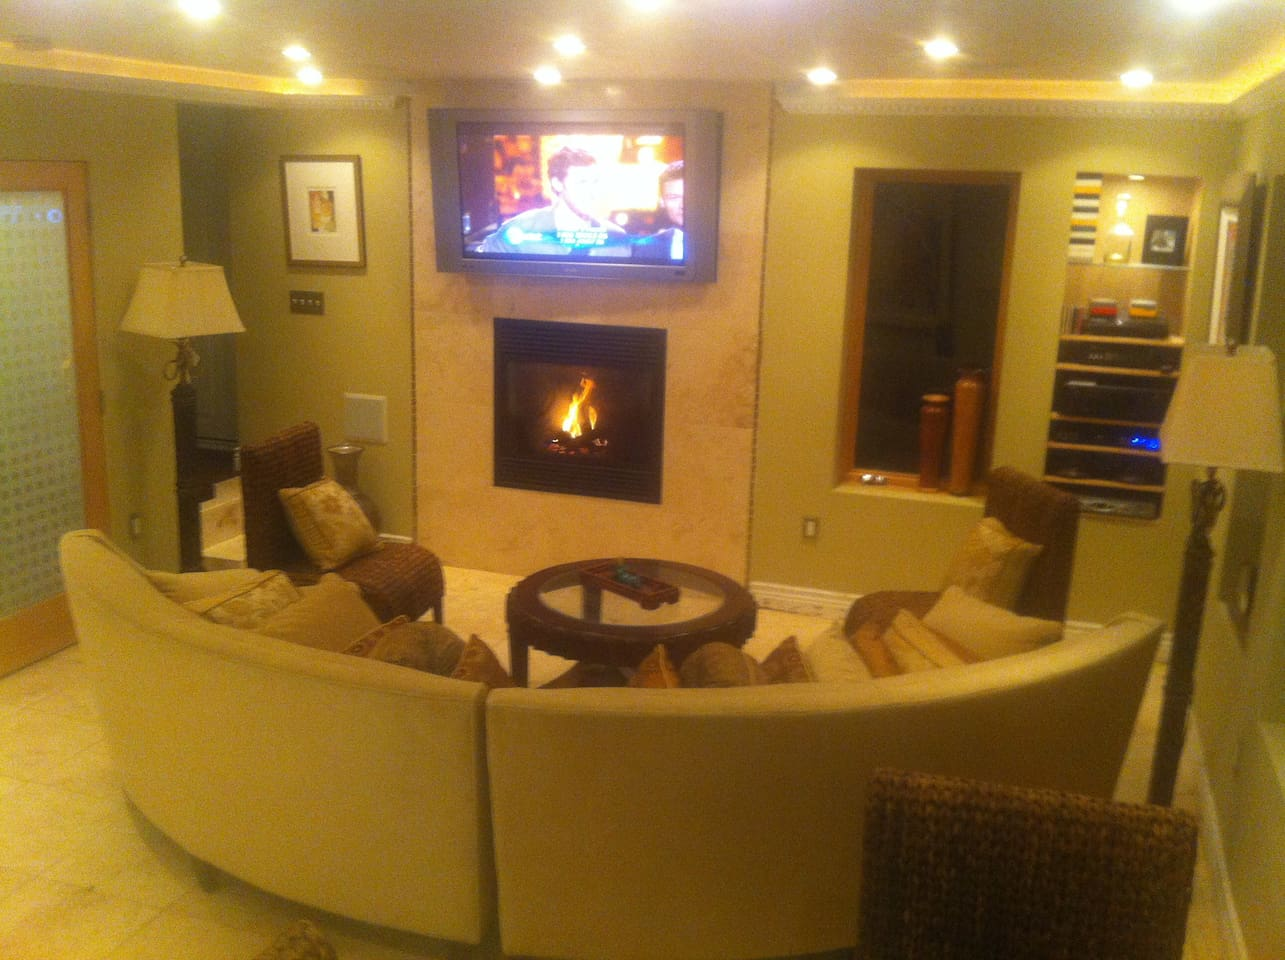 Circular sectional with remote-controlled fireplace